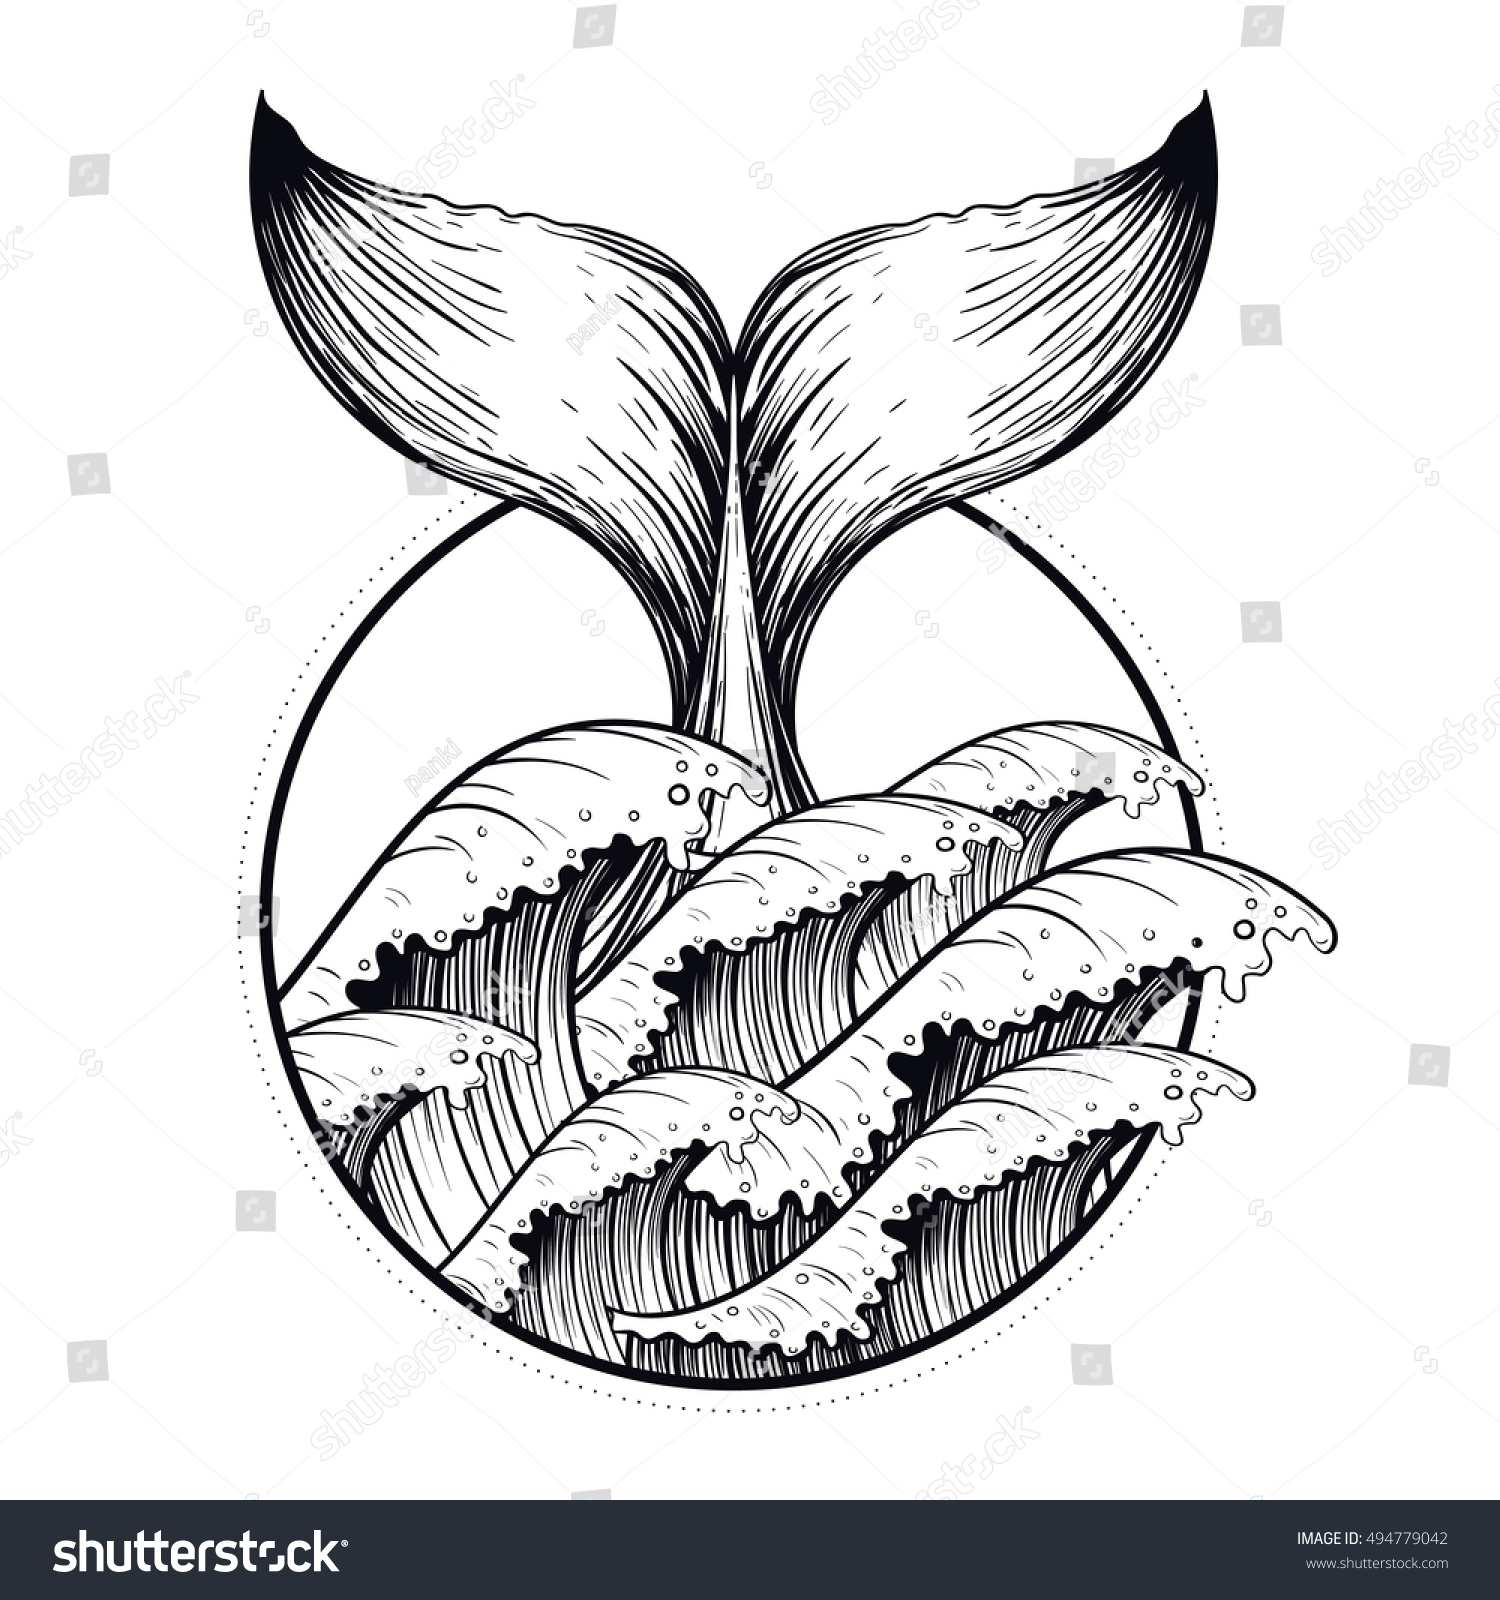 Line Art Poster Design : Whale tail sea waves boho blackwork stock vector